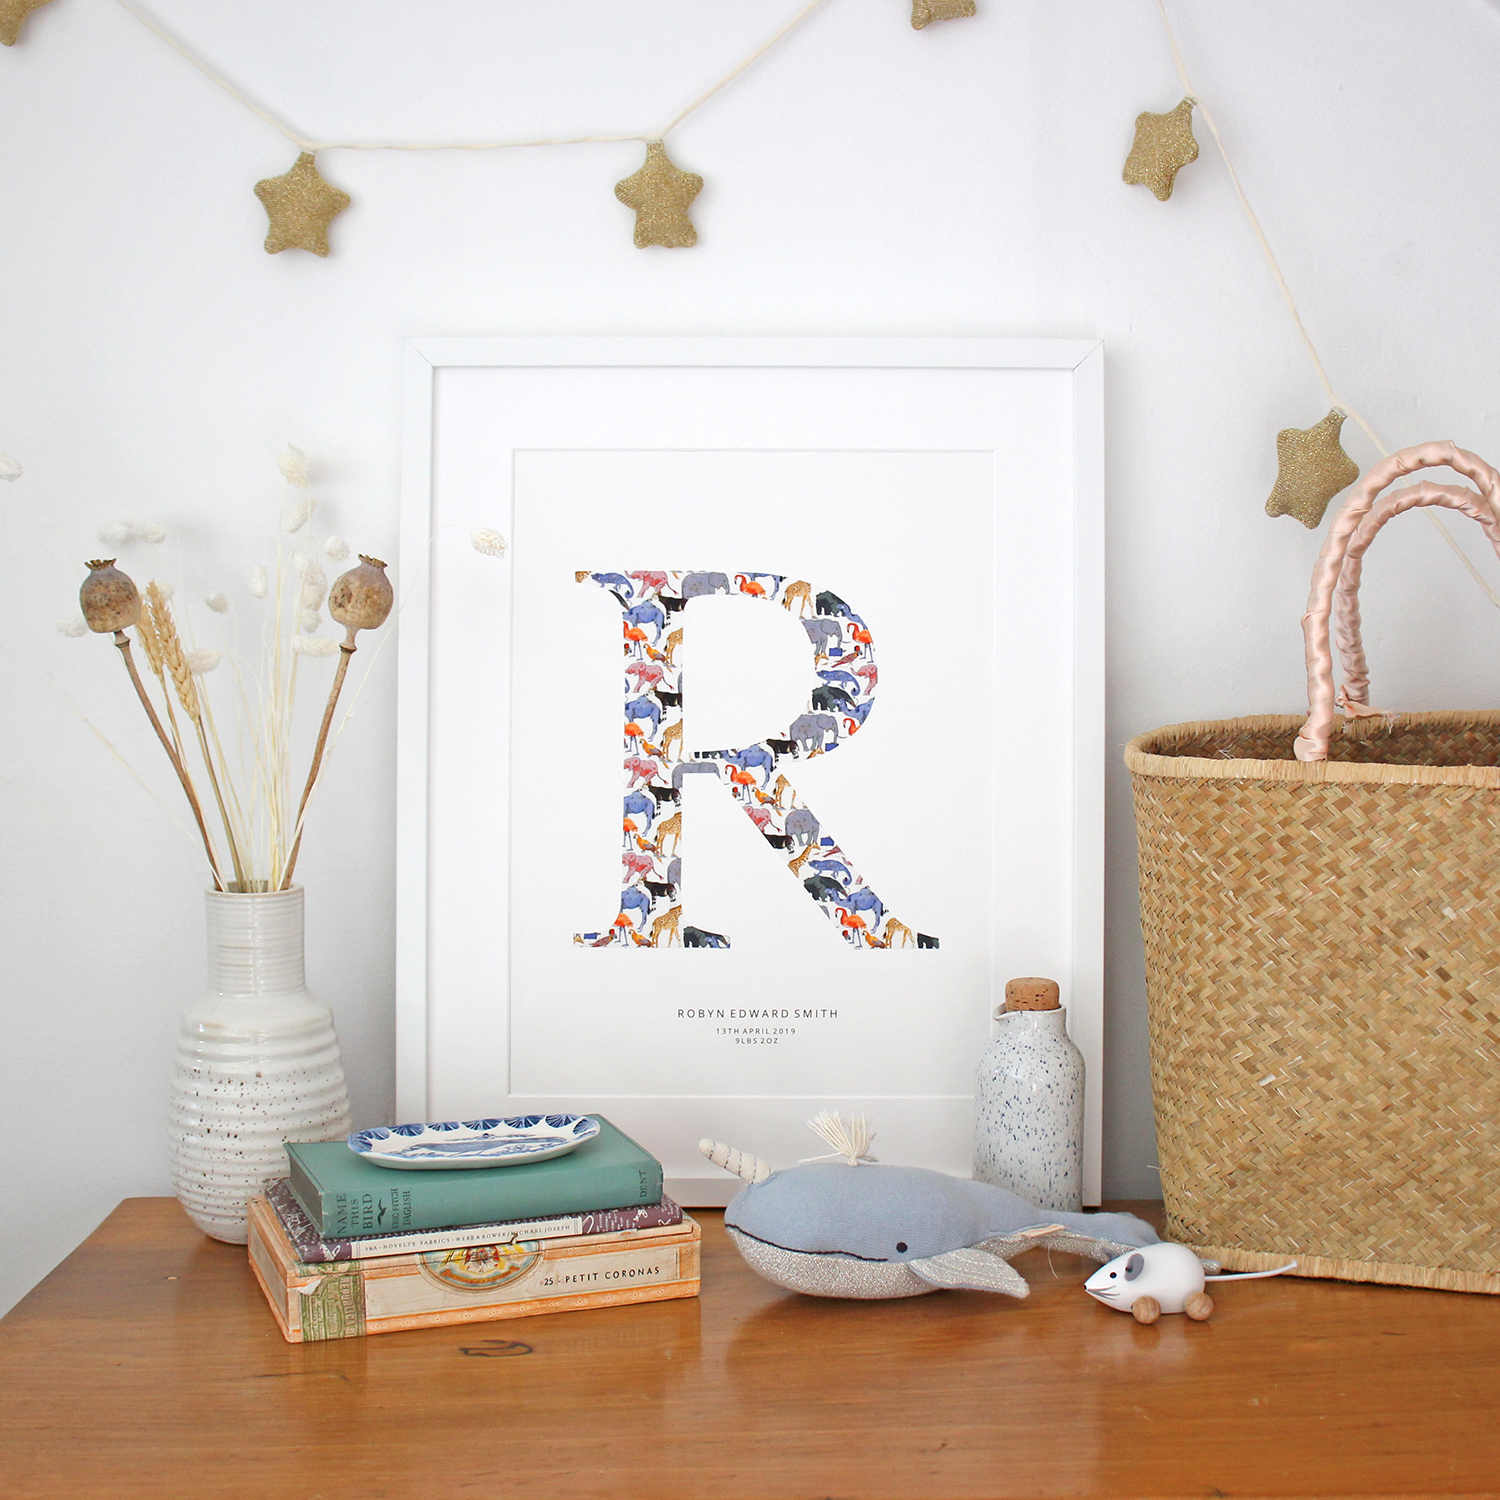 The-Charming-Press-product-photography-nancy-straughan-nursery-prints-art-styling-liberty-fabric.jpg